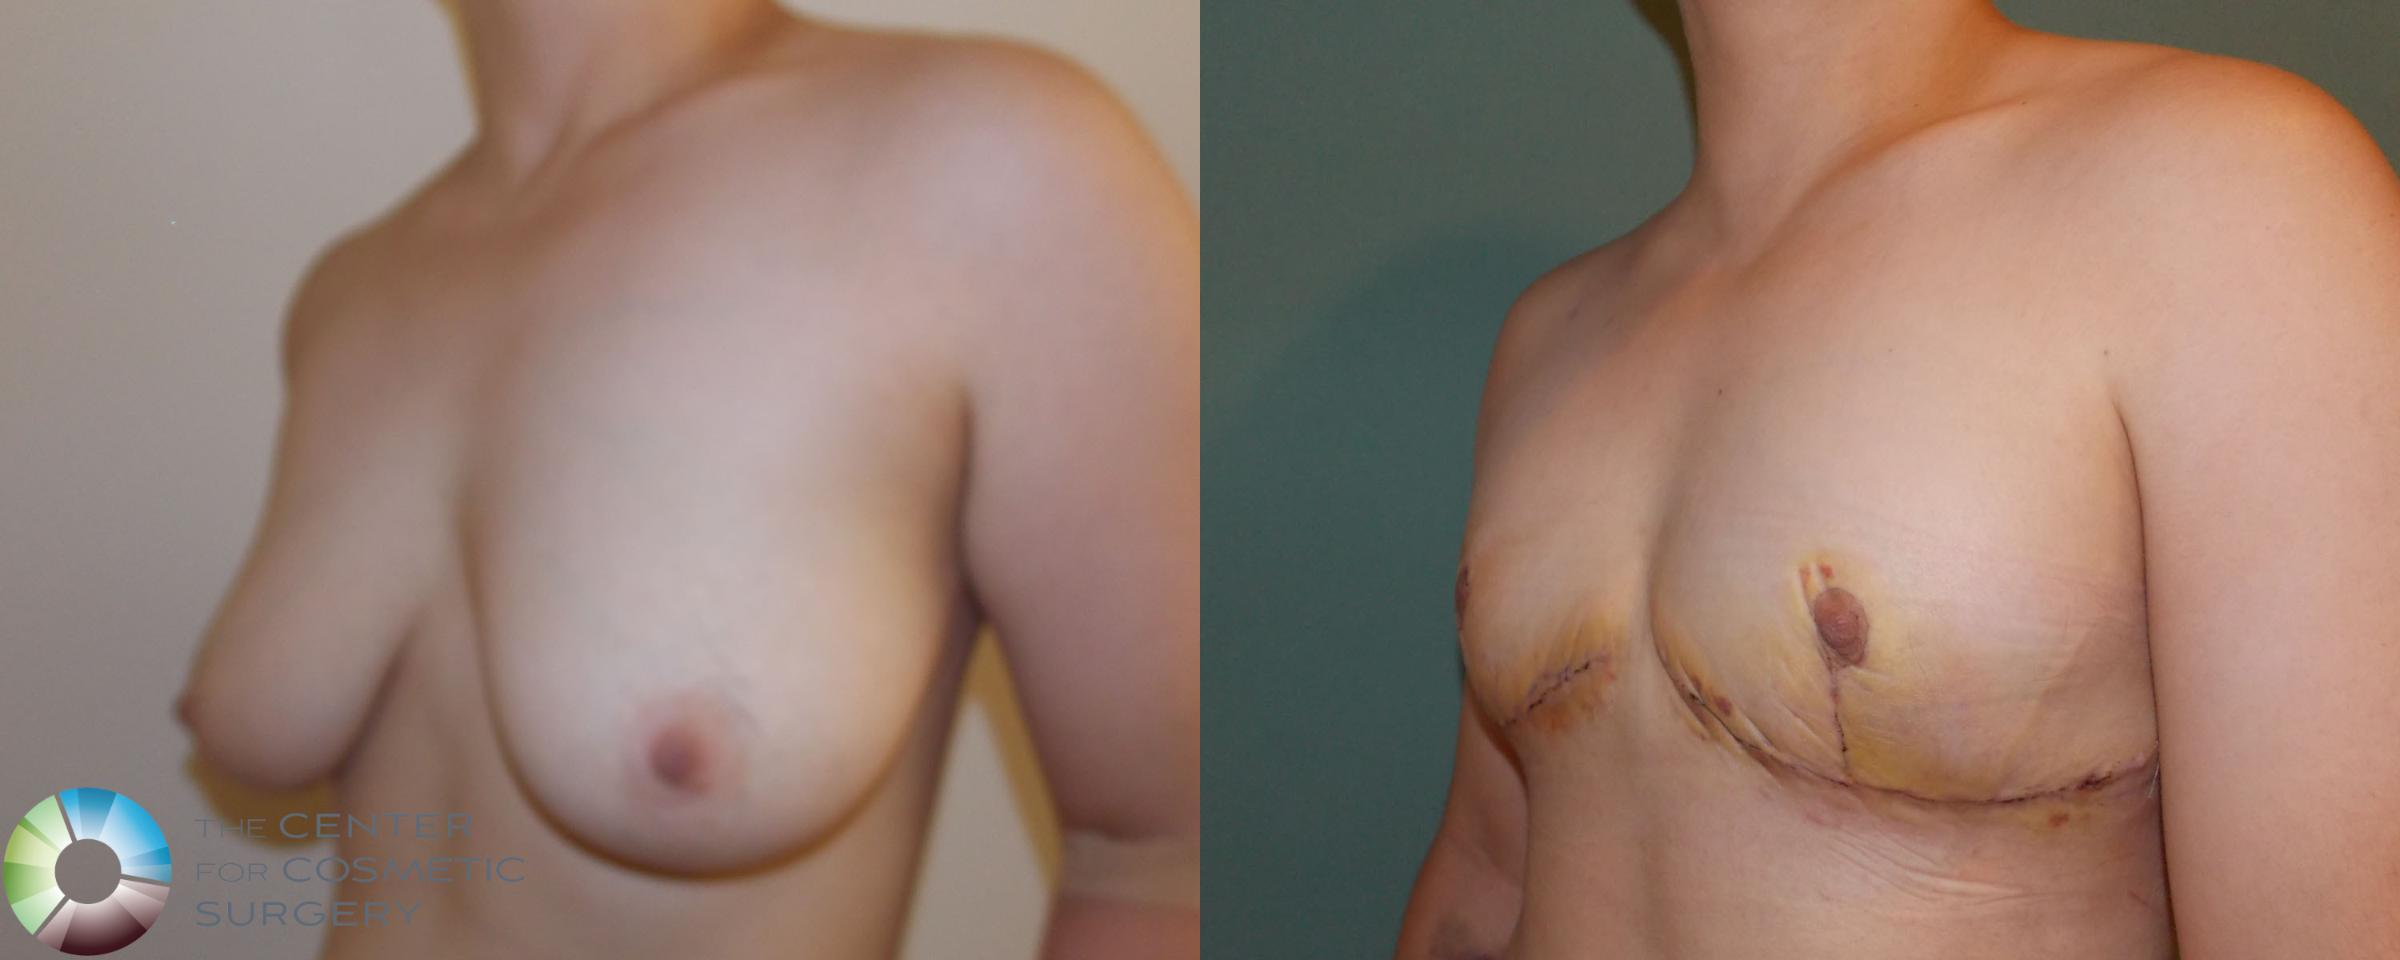 FTM Top Surgery/Chest Masculinization Case 700 Before & After View #2 | Golden, CO | The Center for Cosmetic Surgery